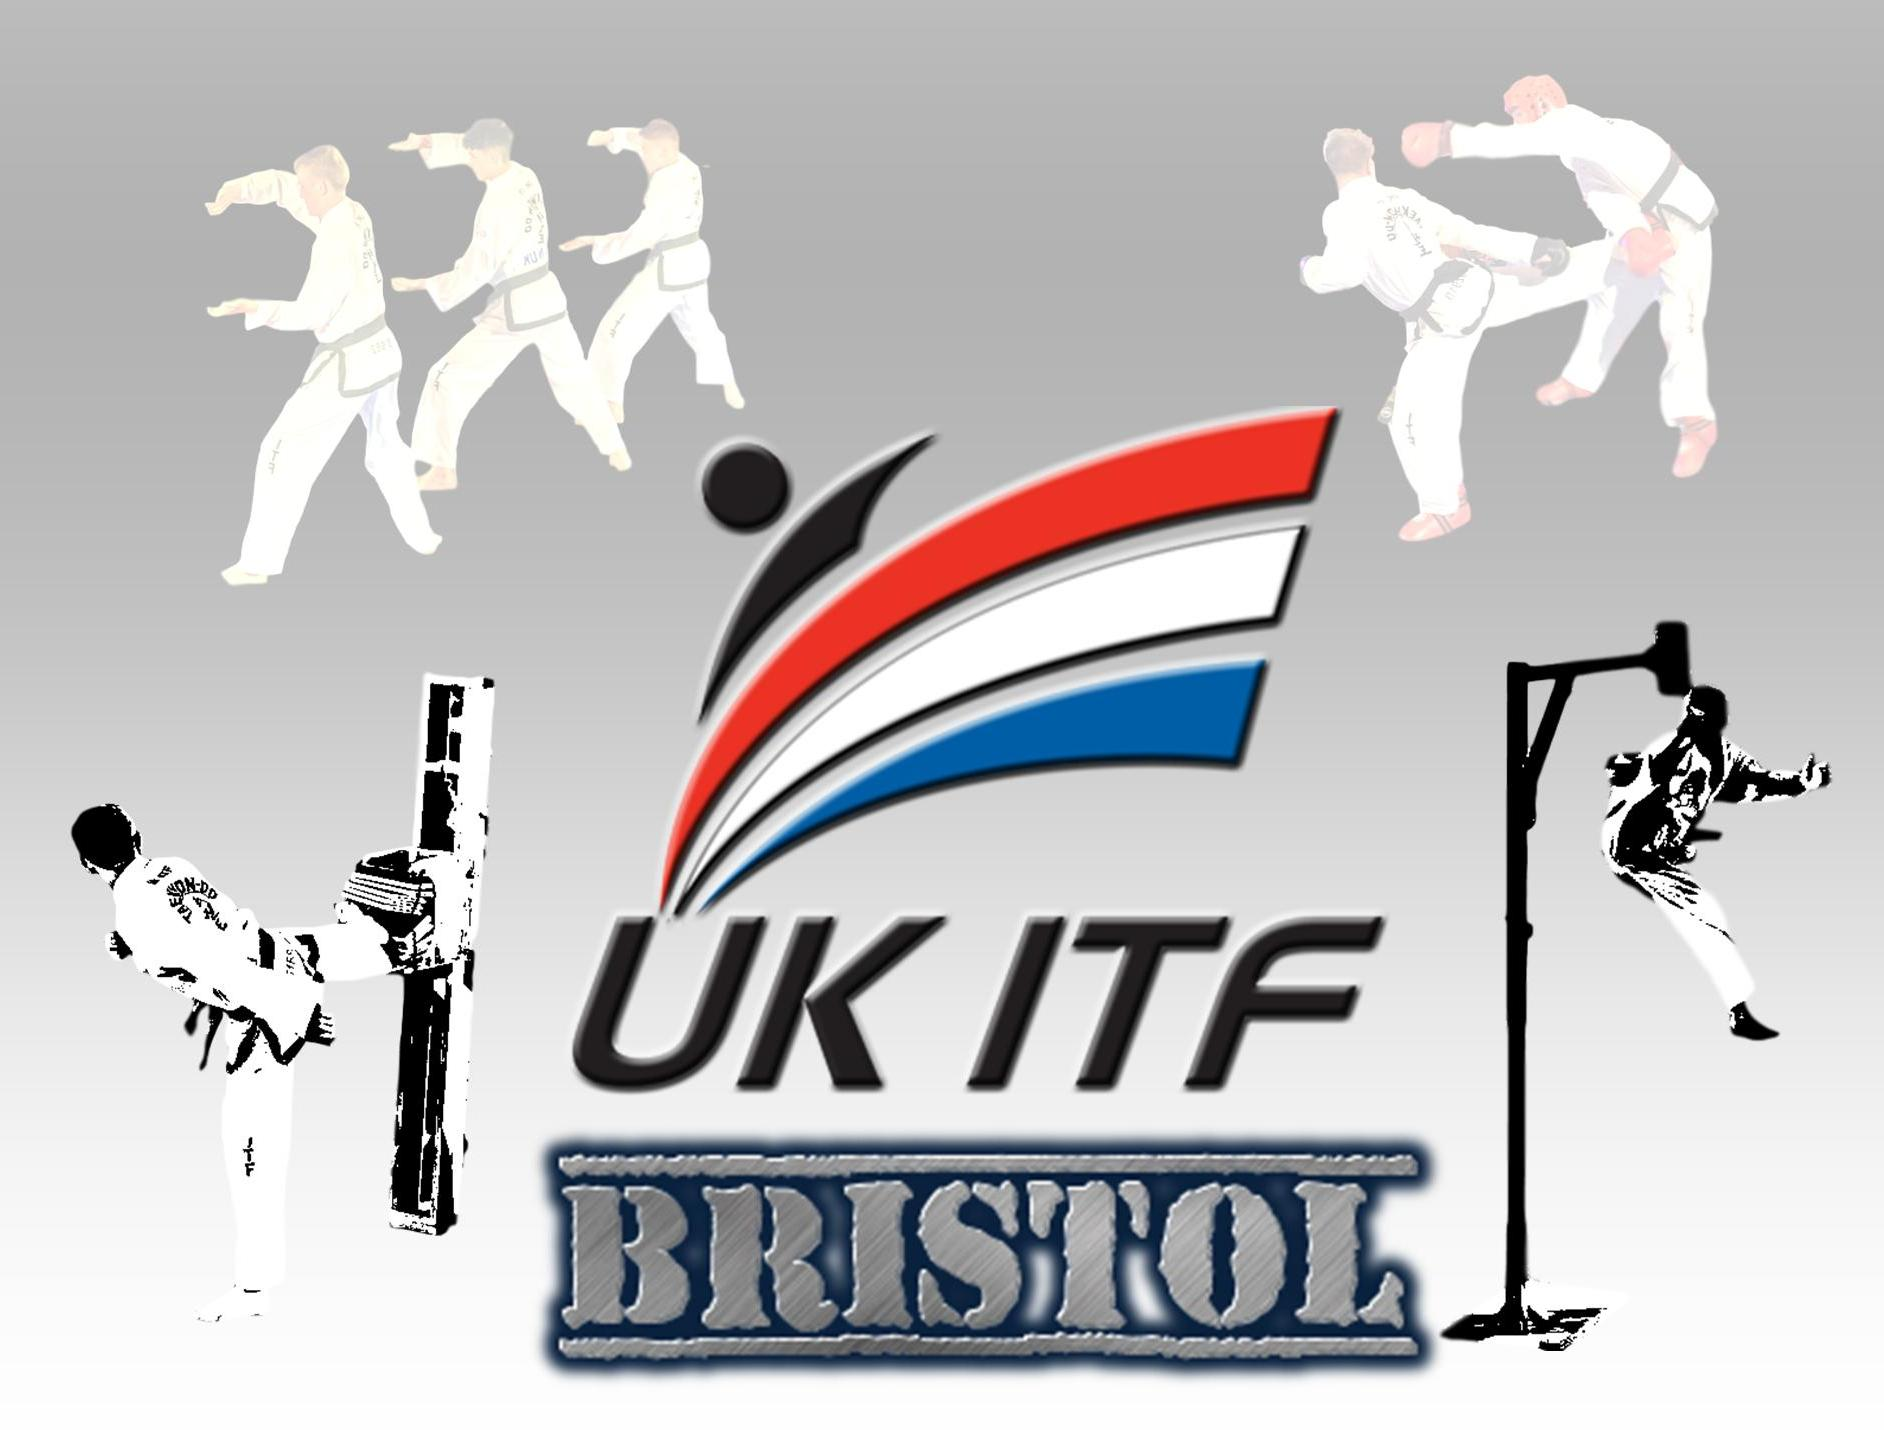 UK ITF Bristol Tournament training